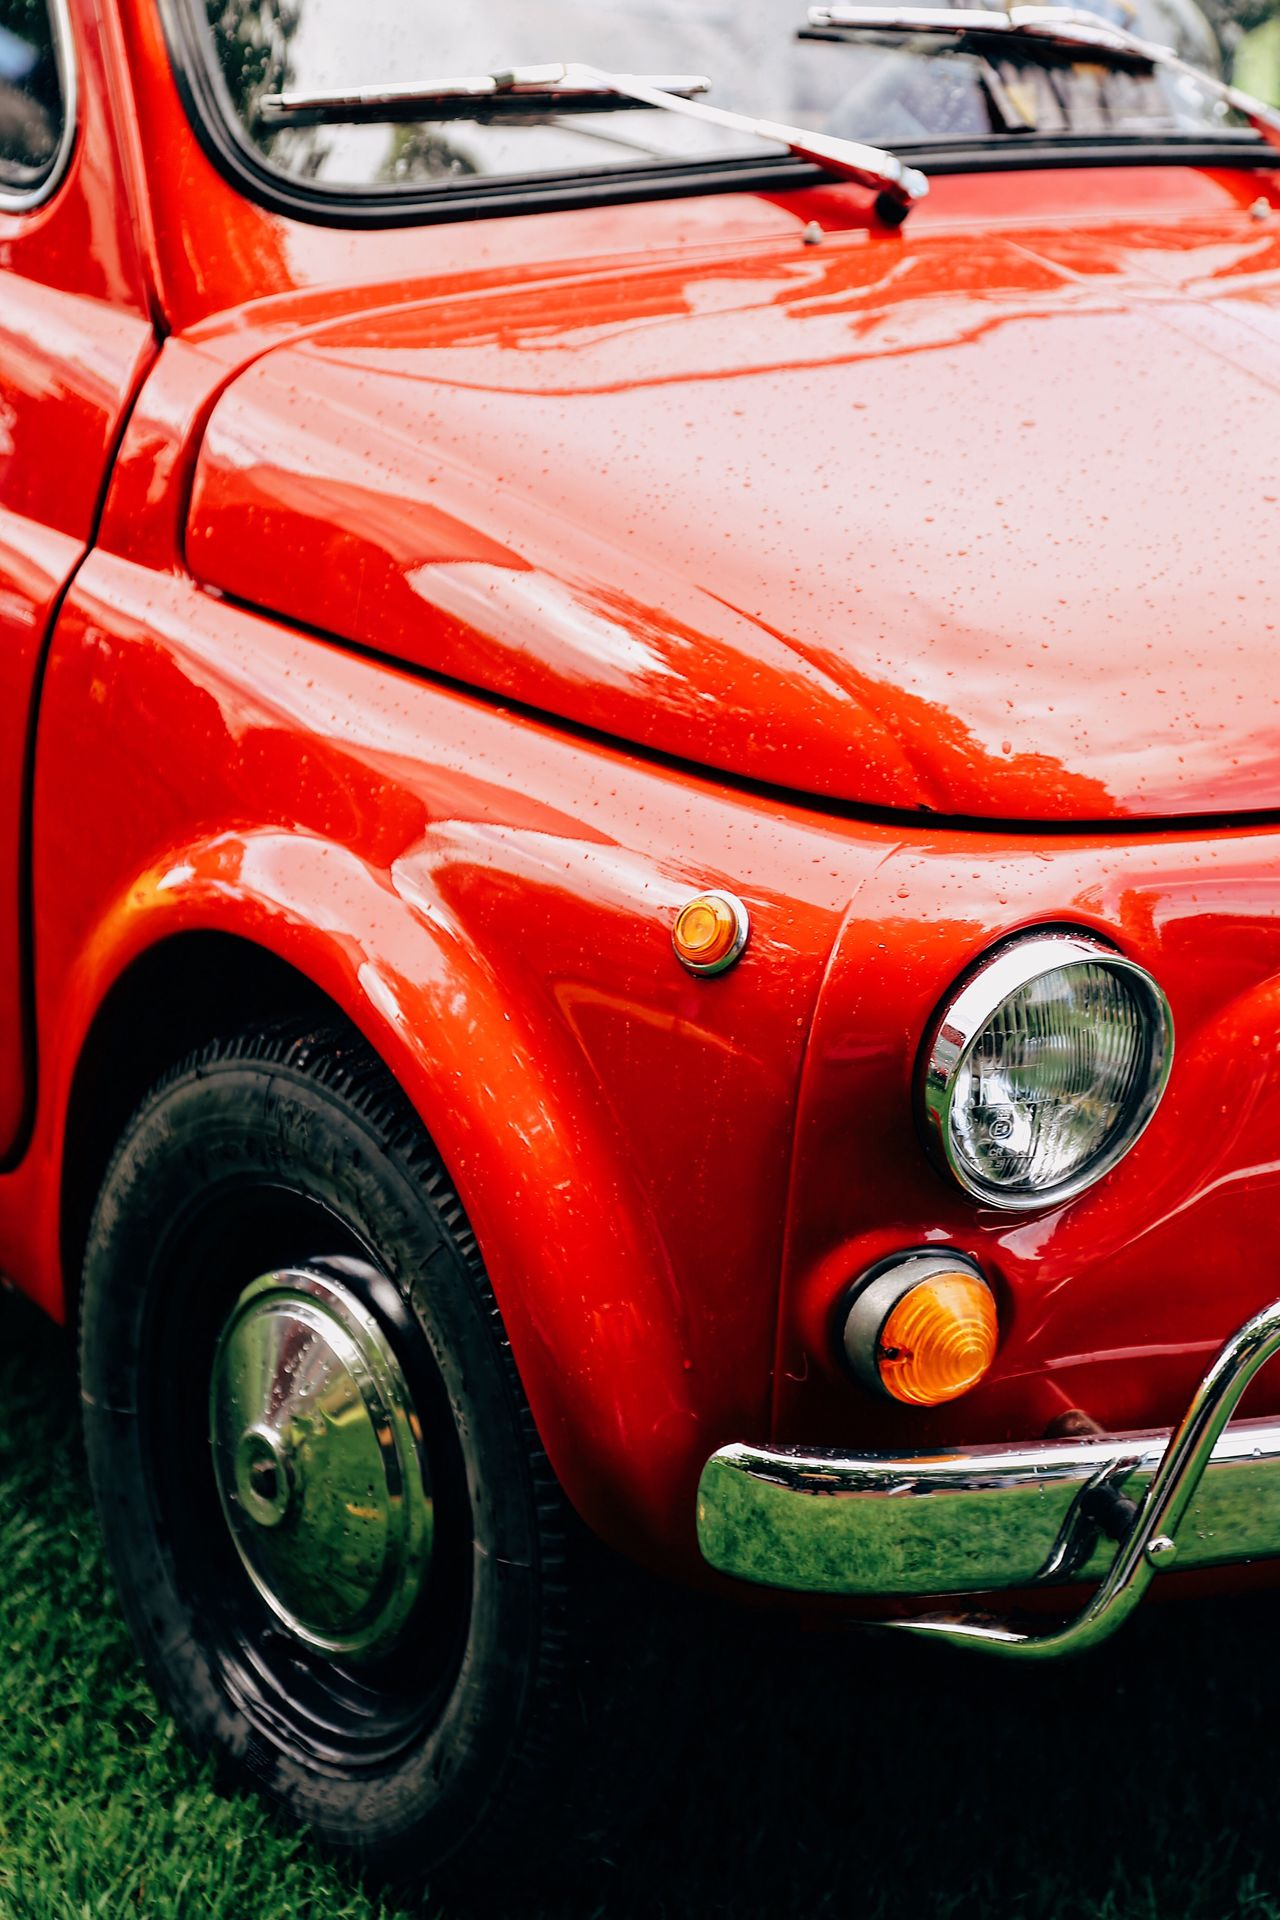 Car Land Vehicle Red Transportation No People Outdoors Day Close-up Transportation Stationary Luxury Mode Of Transport Collector's Car Cars Headlight Speed Engine Colorful Chrome Drive Red Shiny Racecar